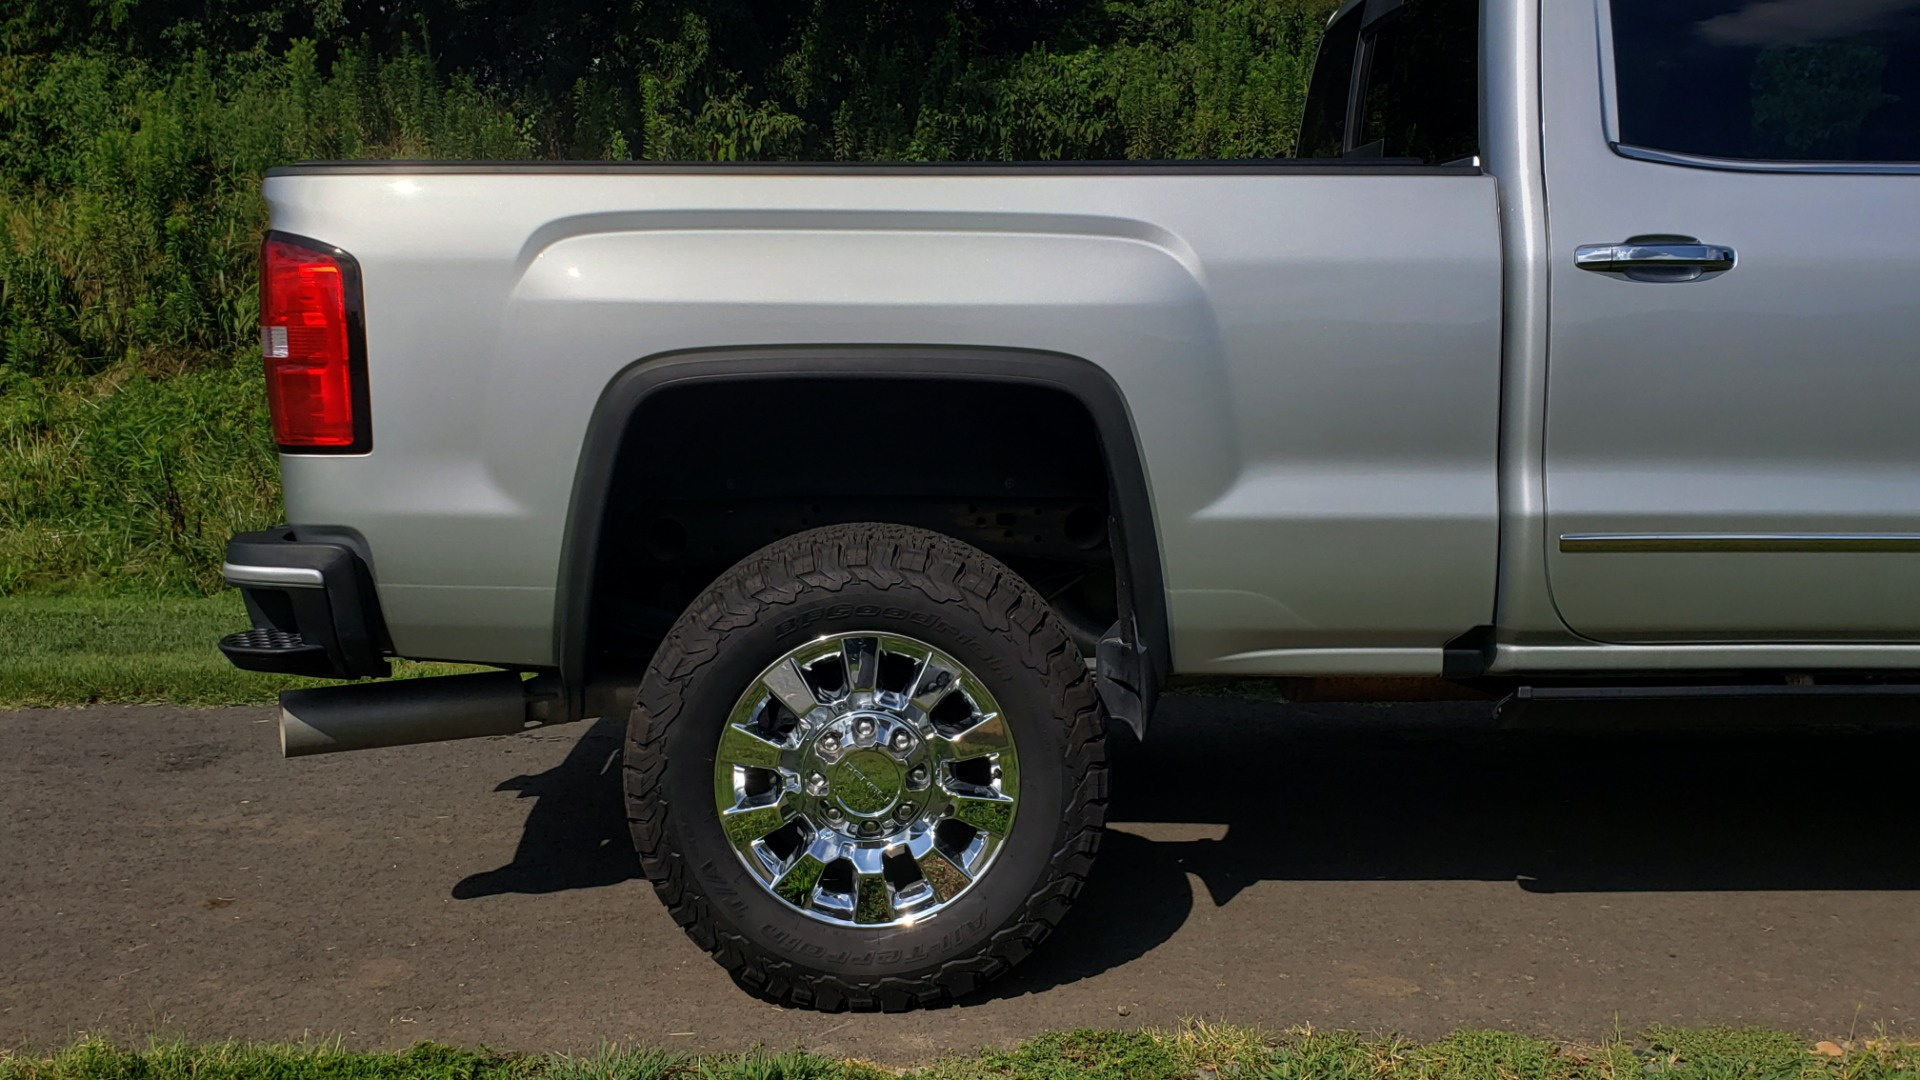 Used 2018 GMC SIERRA 2500HD DENALI 4WD / 6.6L DURAMAX / NAV / SUNROOF / BOSE / REARVIEW for sale Sold at Formula Imports in Charlotte NC 28227 90